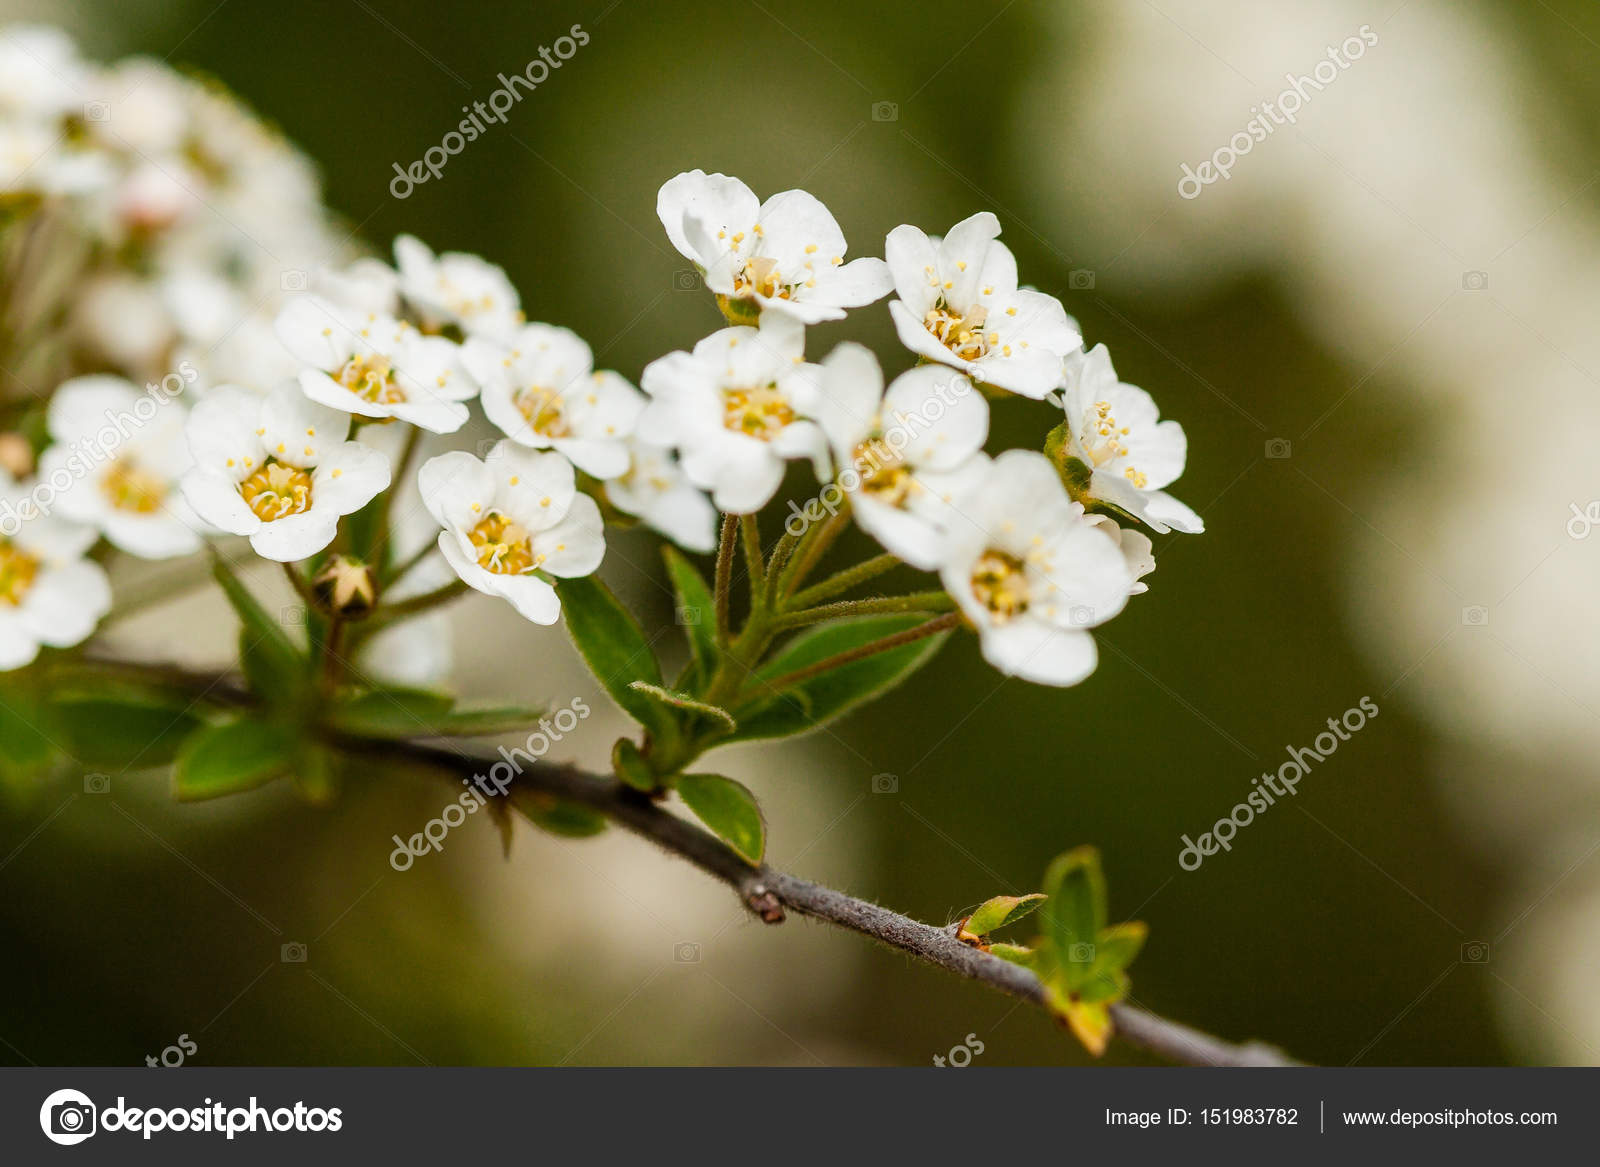 Macro Bush Of Small White Flowers On A Branch Stock Photo